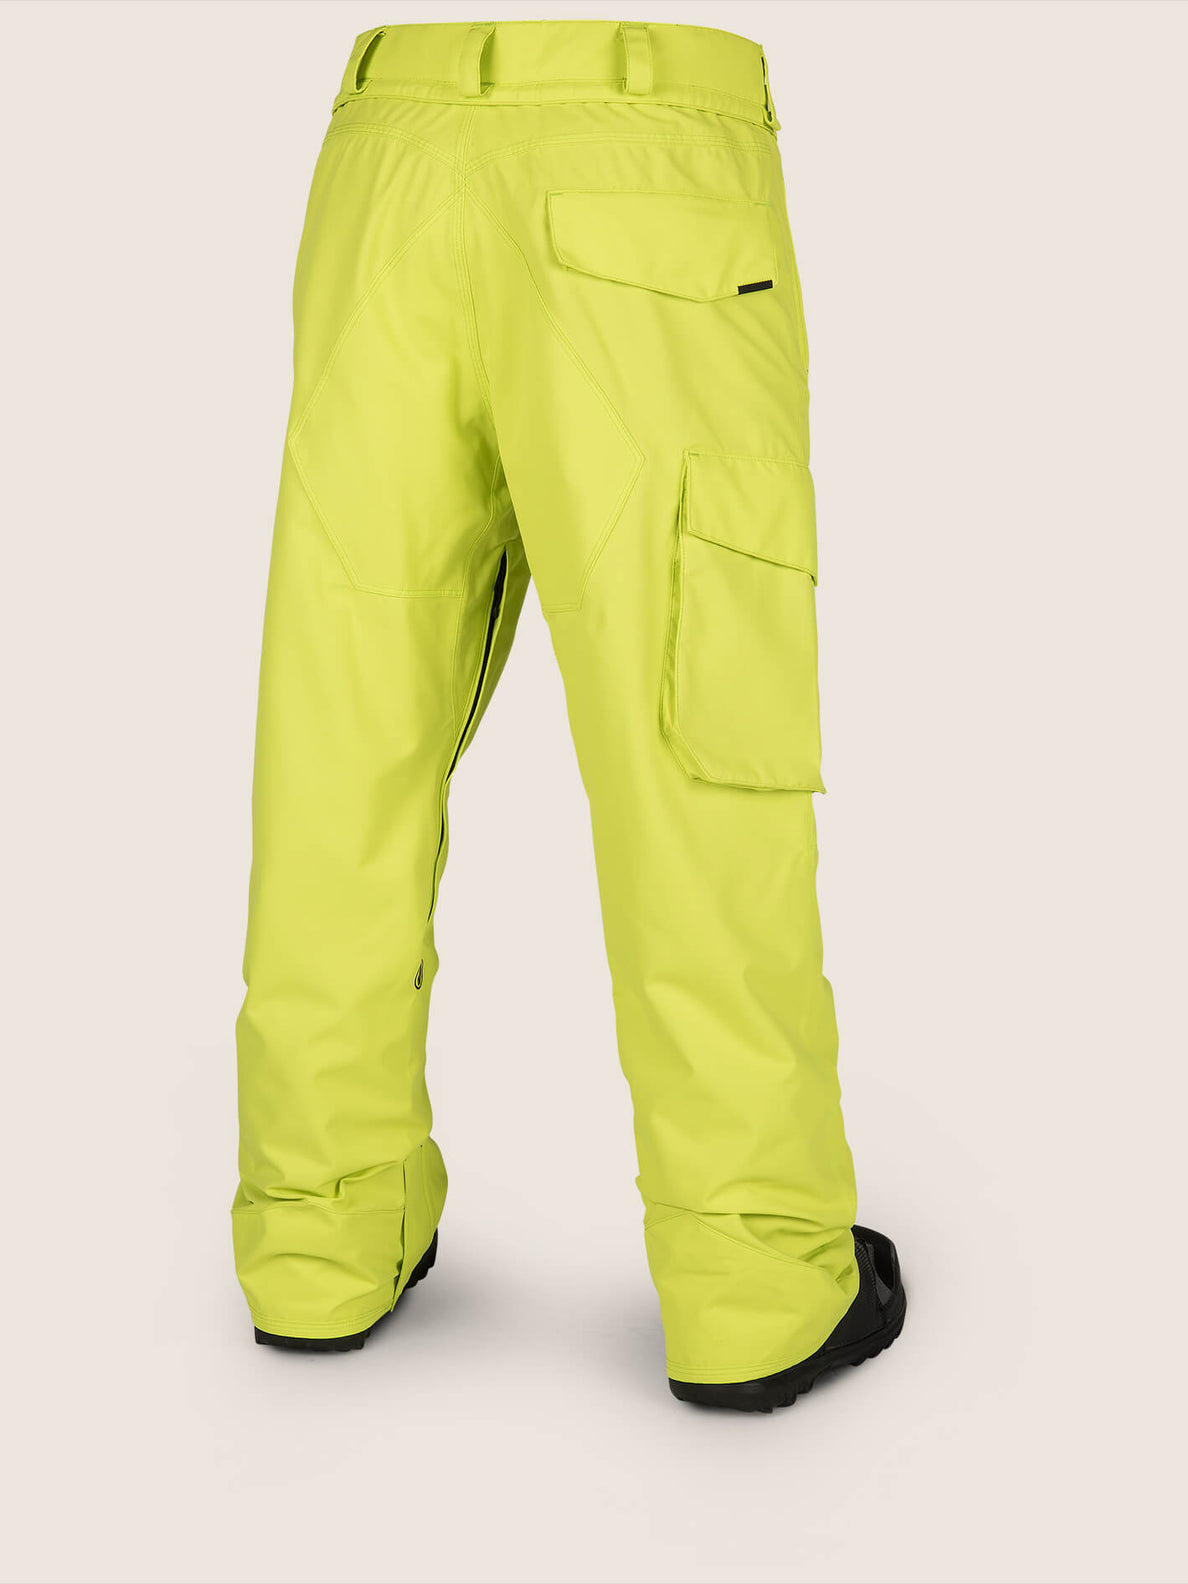 Ventral Pant In Lime, Back View